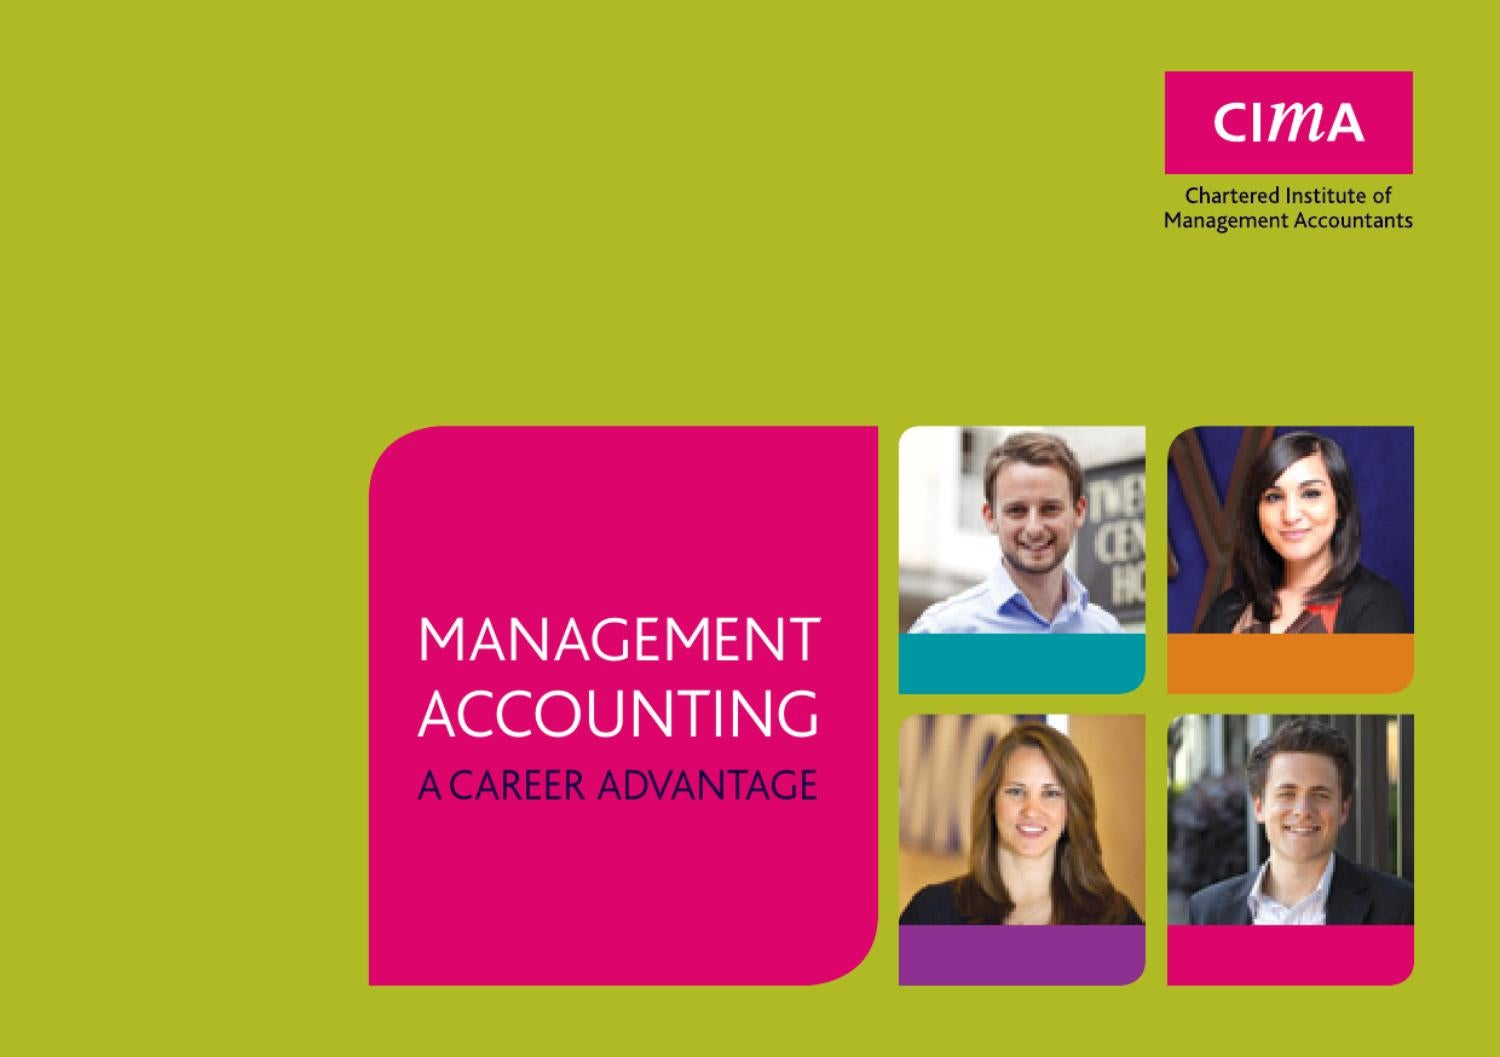 Management Accounting  A Career Advantage By Chartered. Baptist Seminary Online Forum Signature Maker. Dui Attorney Long Beach Domain Name Promotion. Is Depression Covered Under Fmla. How Do I Know If I Owe Taxes Lawyers In Az. Authentic Recovery Center Parker Garage Doors. Volkswagen Dealers Orlando What Is Sip Trunks. Do Authorized Users Build Credit. Roofing Companies In Michigan